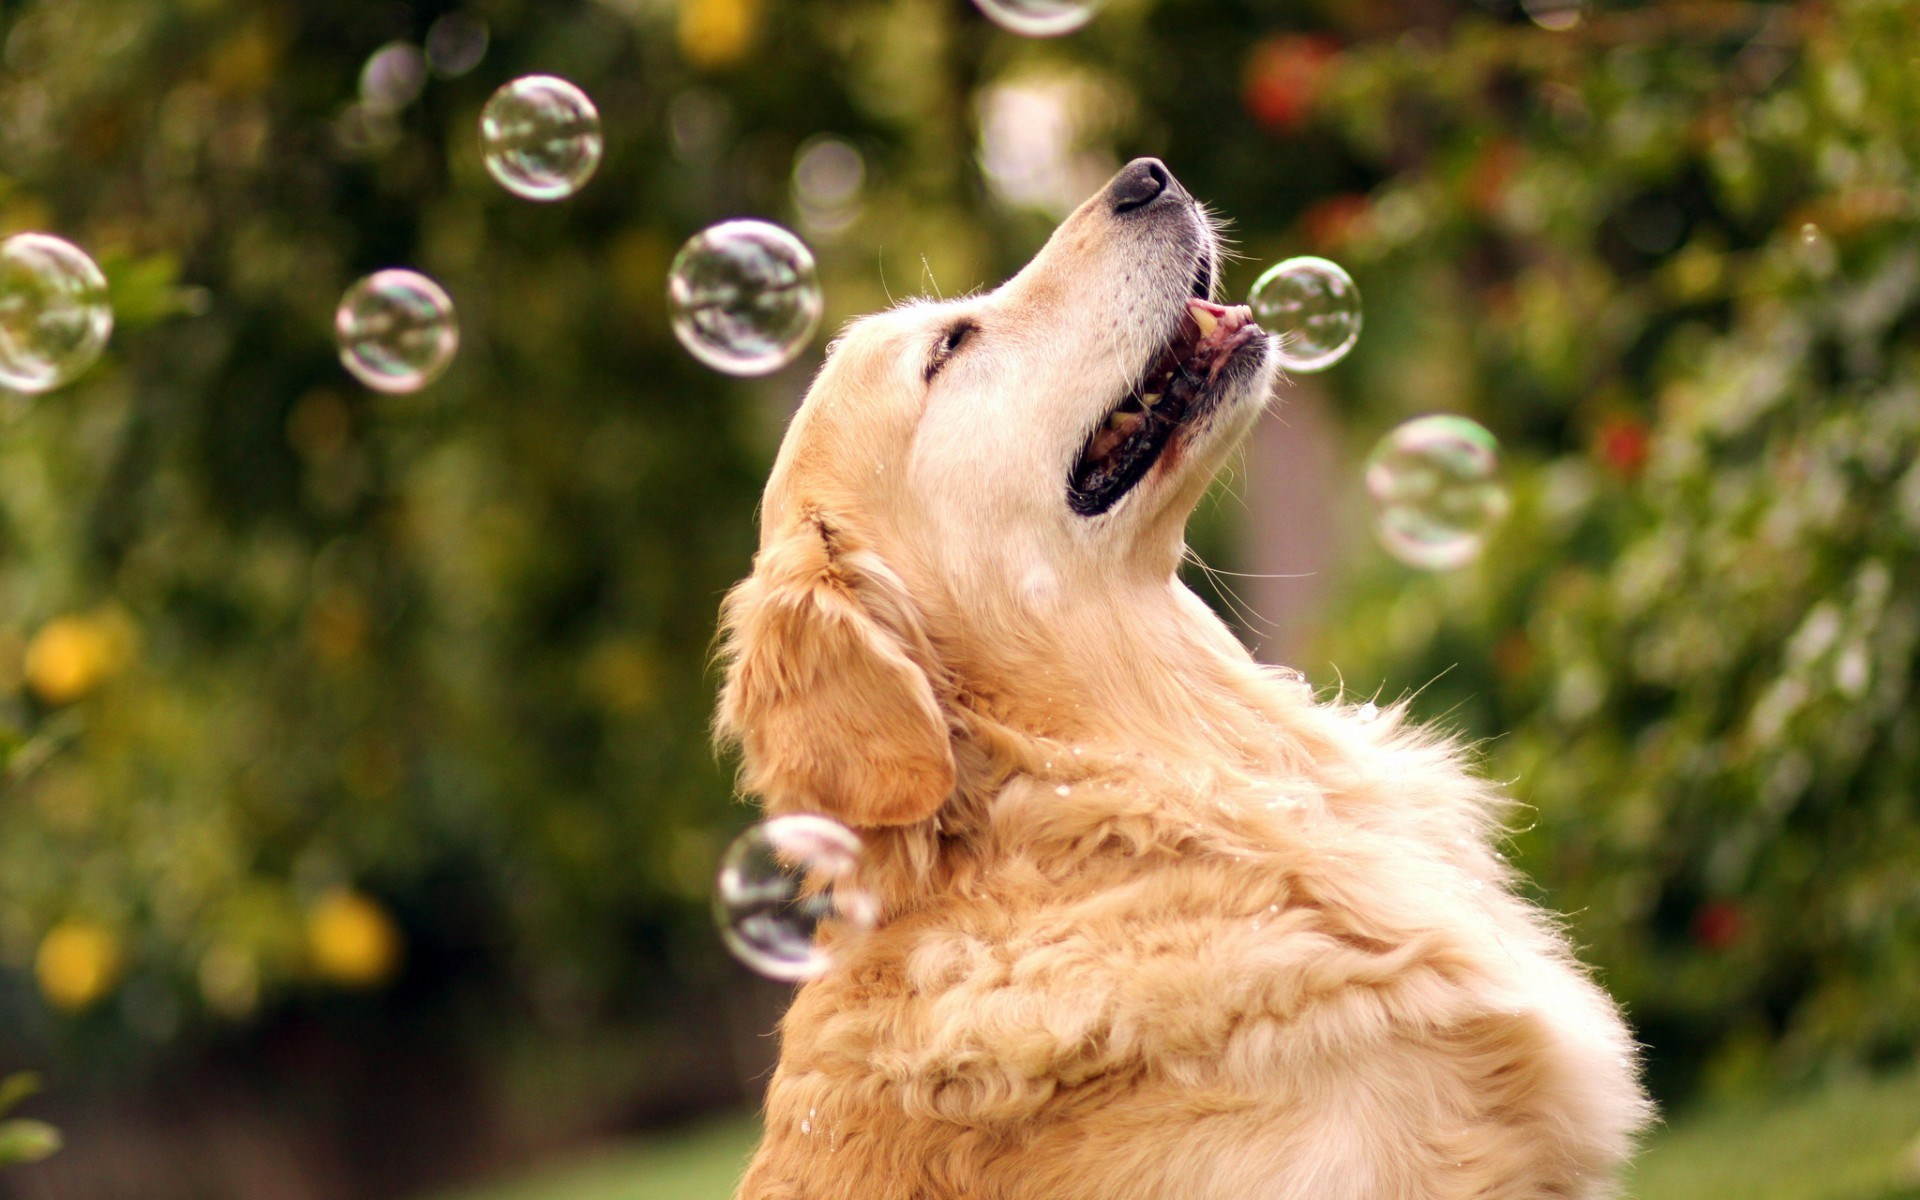 Cute Golden Retriever Wallpaper Bilder Von Retriever Hunde Schnee Tiere